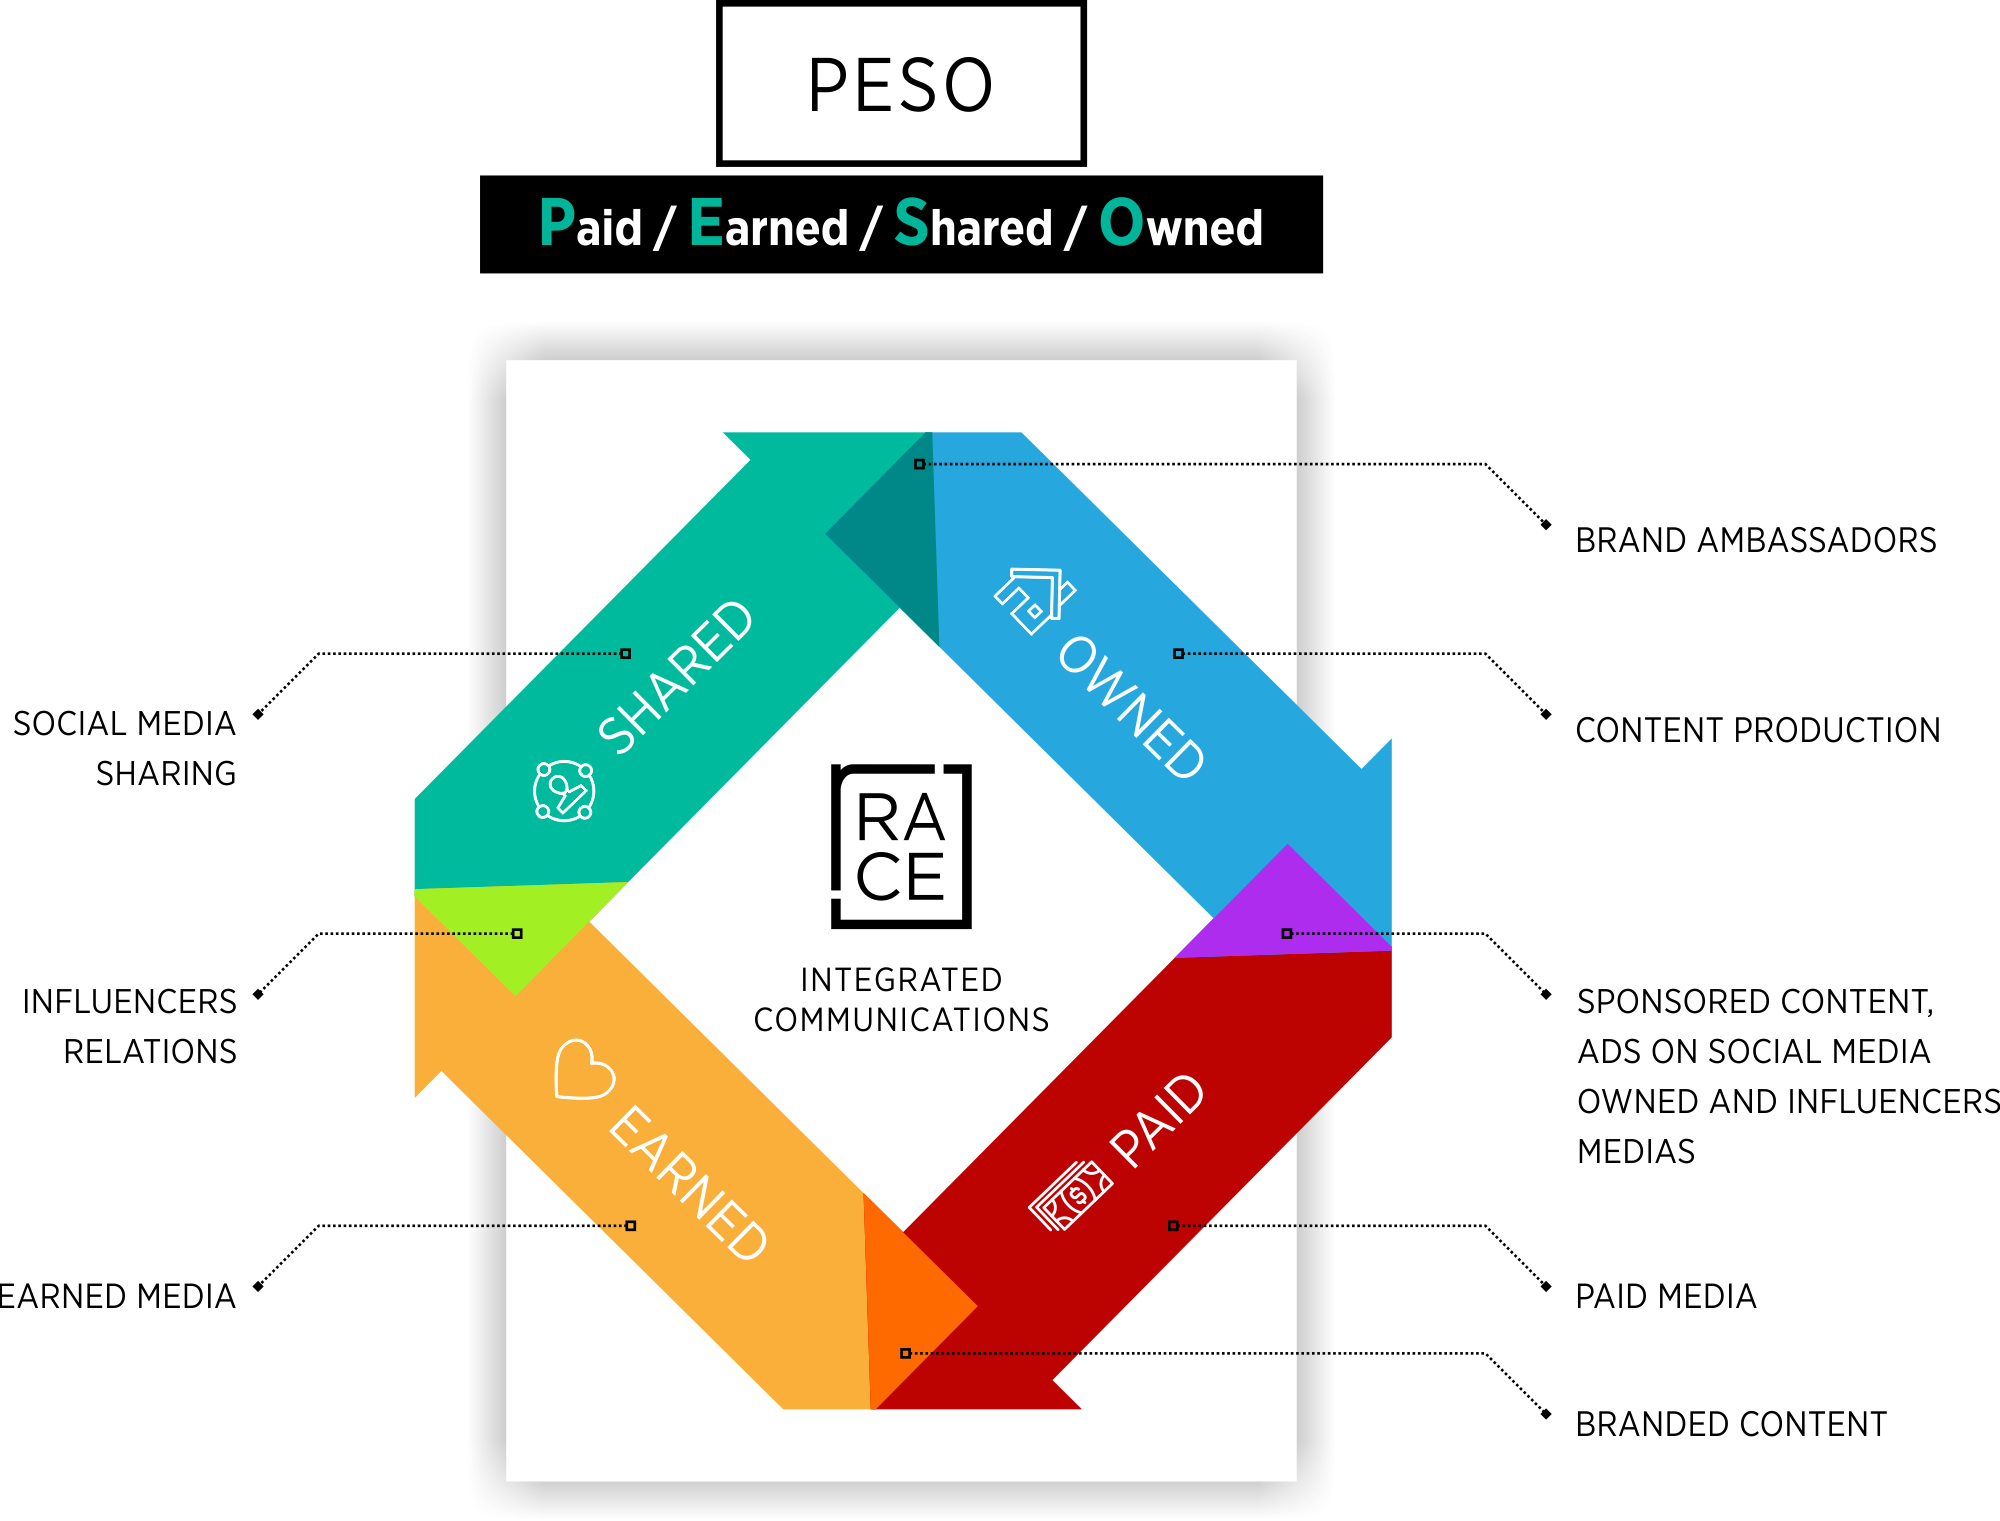 RACE PESO - What Is PESO And Why Should Agencies Start Using It?